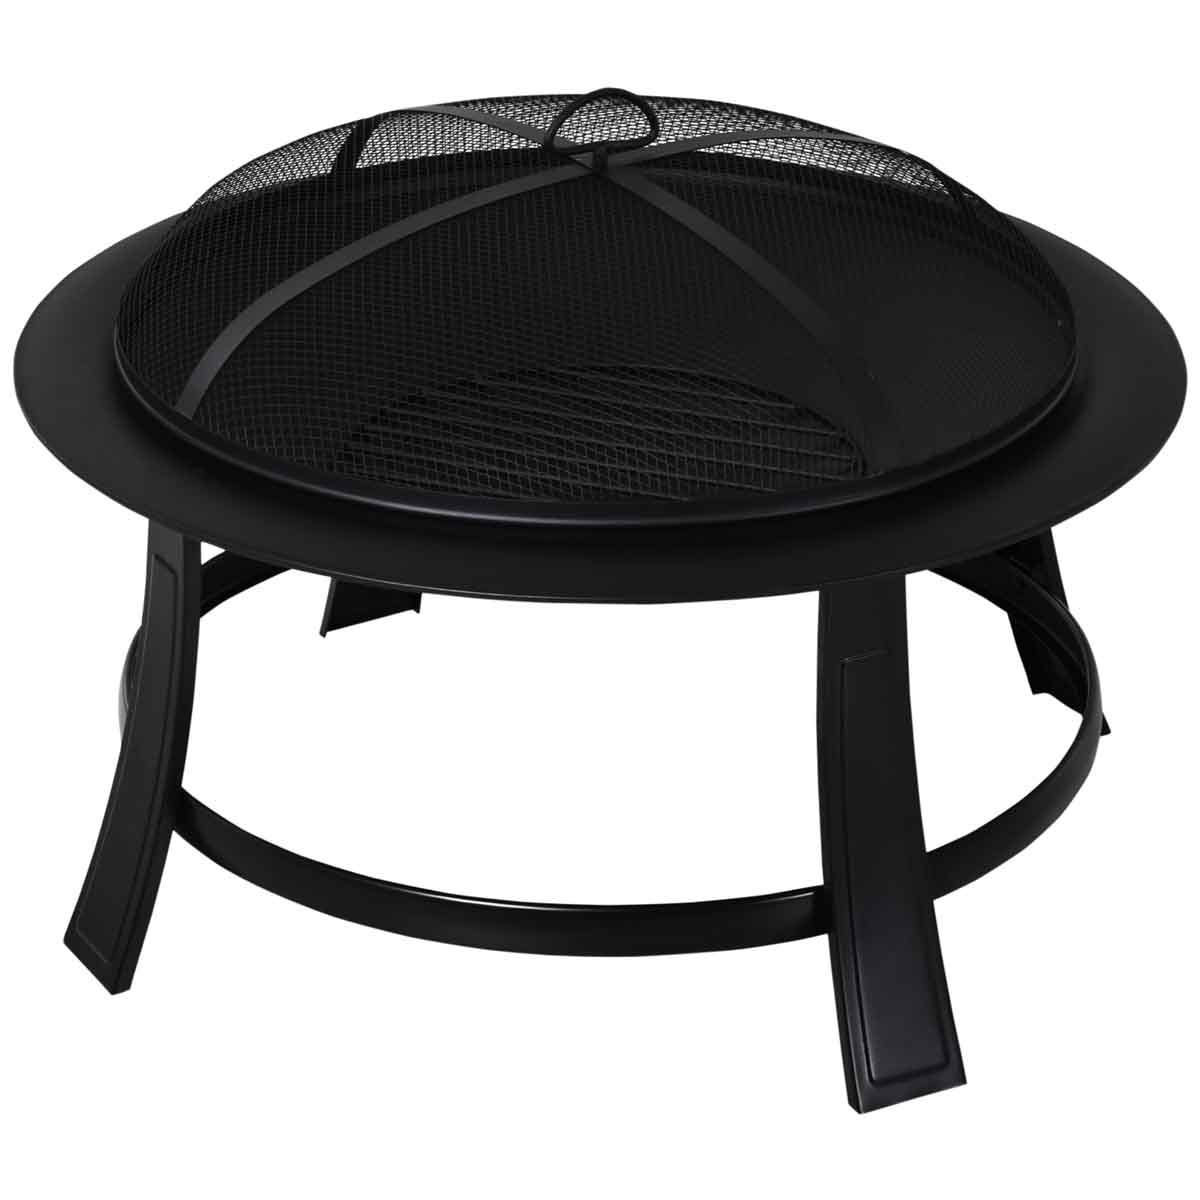 Outsunny Fire Pit with Mesh Cover and Poker - Black